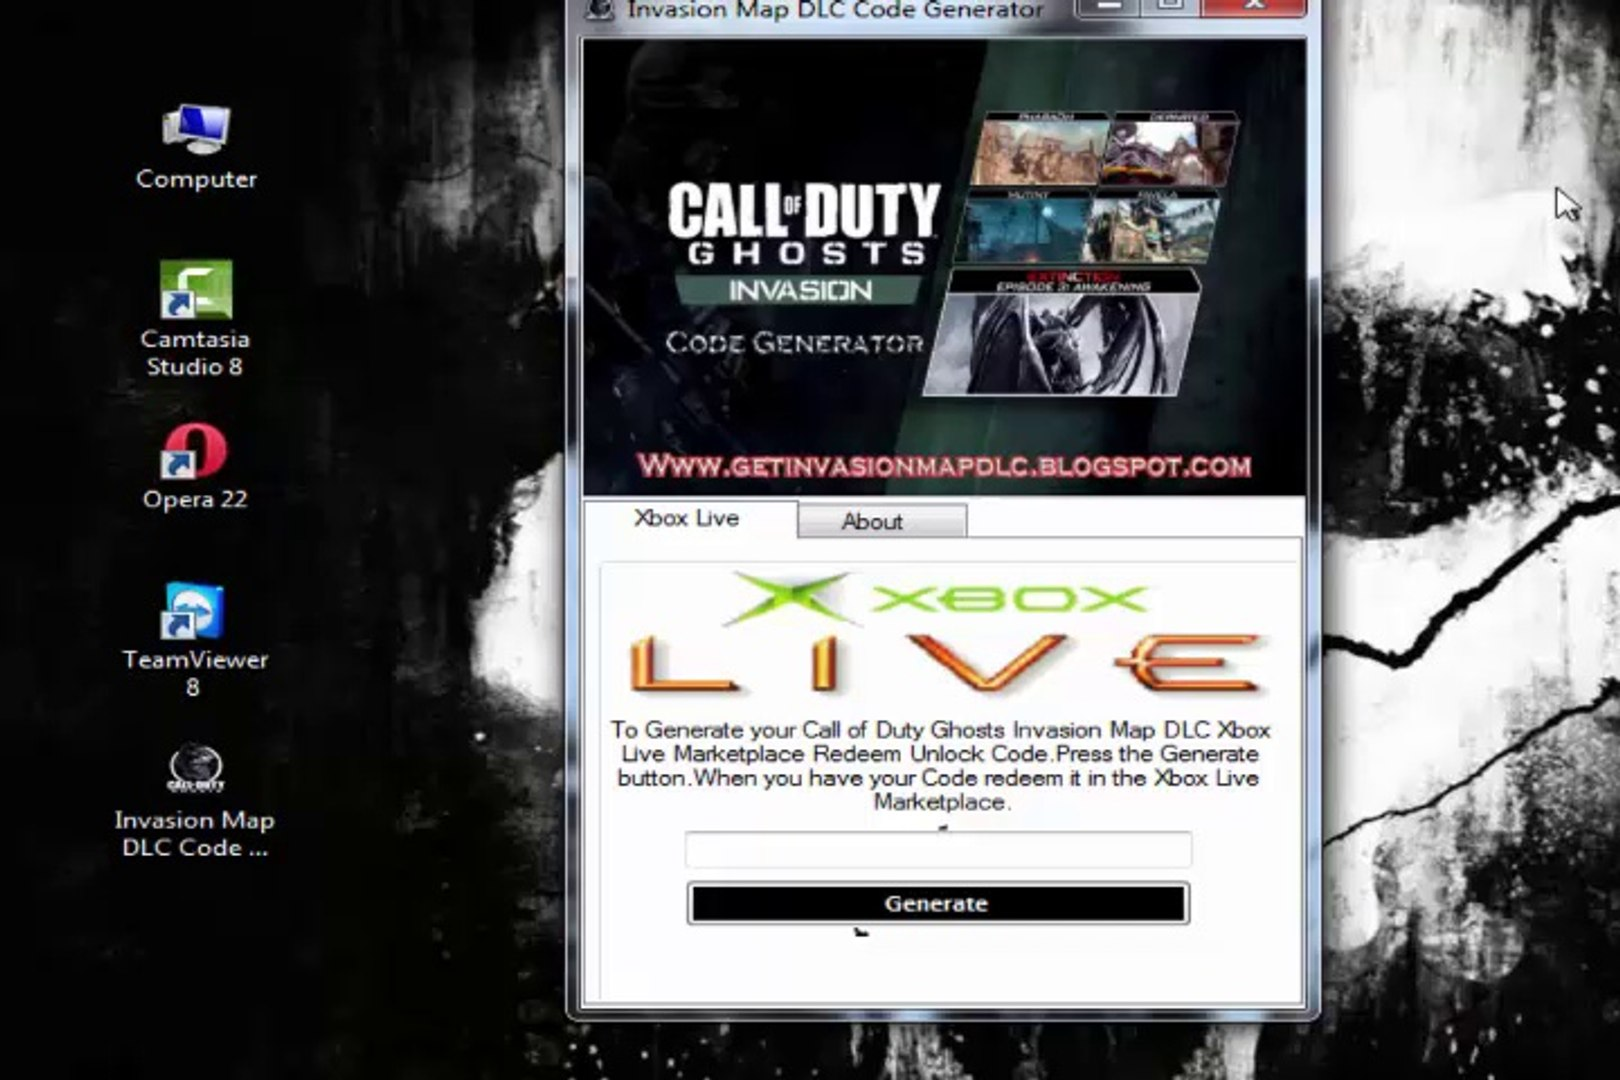 New] How to Get Call of Duty Ghosts Invasion Map DLC Free ... Call Of Duty Ghost Dlc Maps on call of duty black ops 3 release date, call of duty black ops rezurrection, call of duty ghost whiteout map, call duty ghost alien, call of duty black ops screenshots, black ops 1 dlc maps, bo2 dlc maps, call of duty 3 maps, sniper ghost warrior maps, call of duty mw3 maps, black ops 2 dlc maps, call of duty ghosts dlc fog, call of duty black ops 2 orientation, call of duty black ops moon map, call of duty extinction map, call of duty advanced warfare goliath, call of duty black ghost, call of duty world at war zombie maps, all call of duty ghost maps, call of duty mw3 dome,